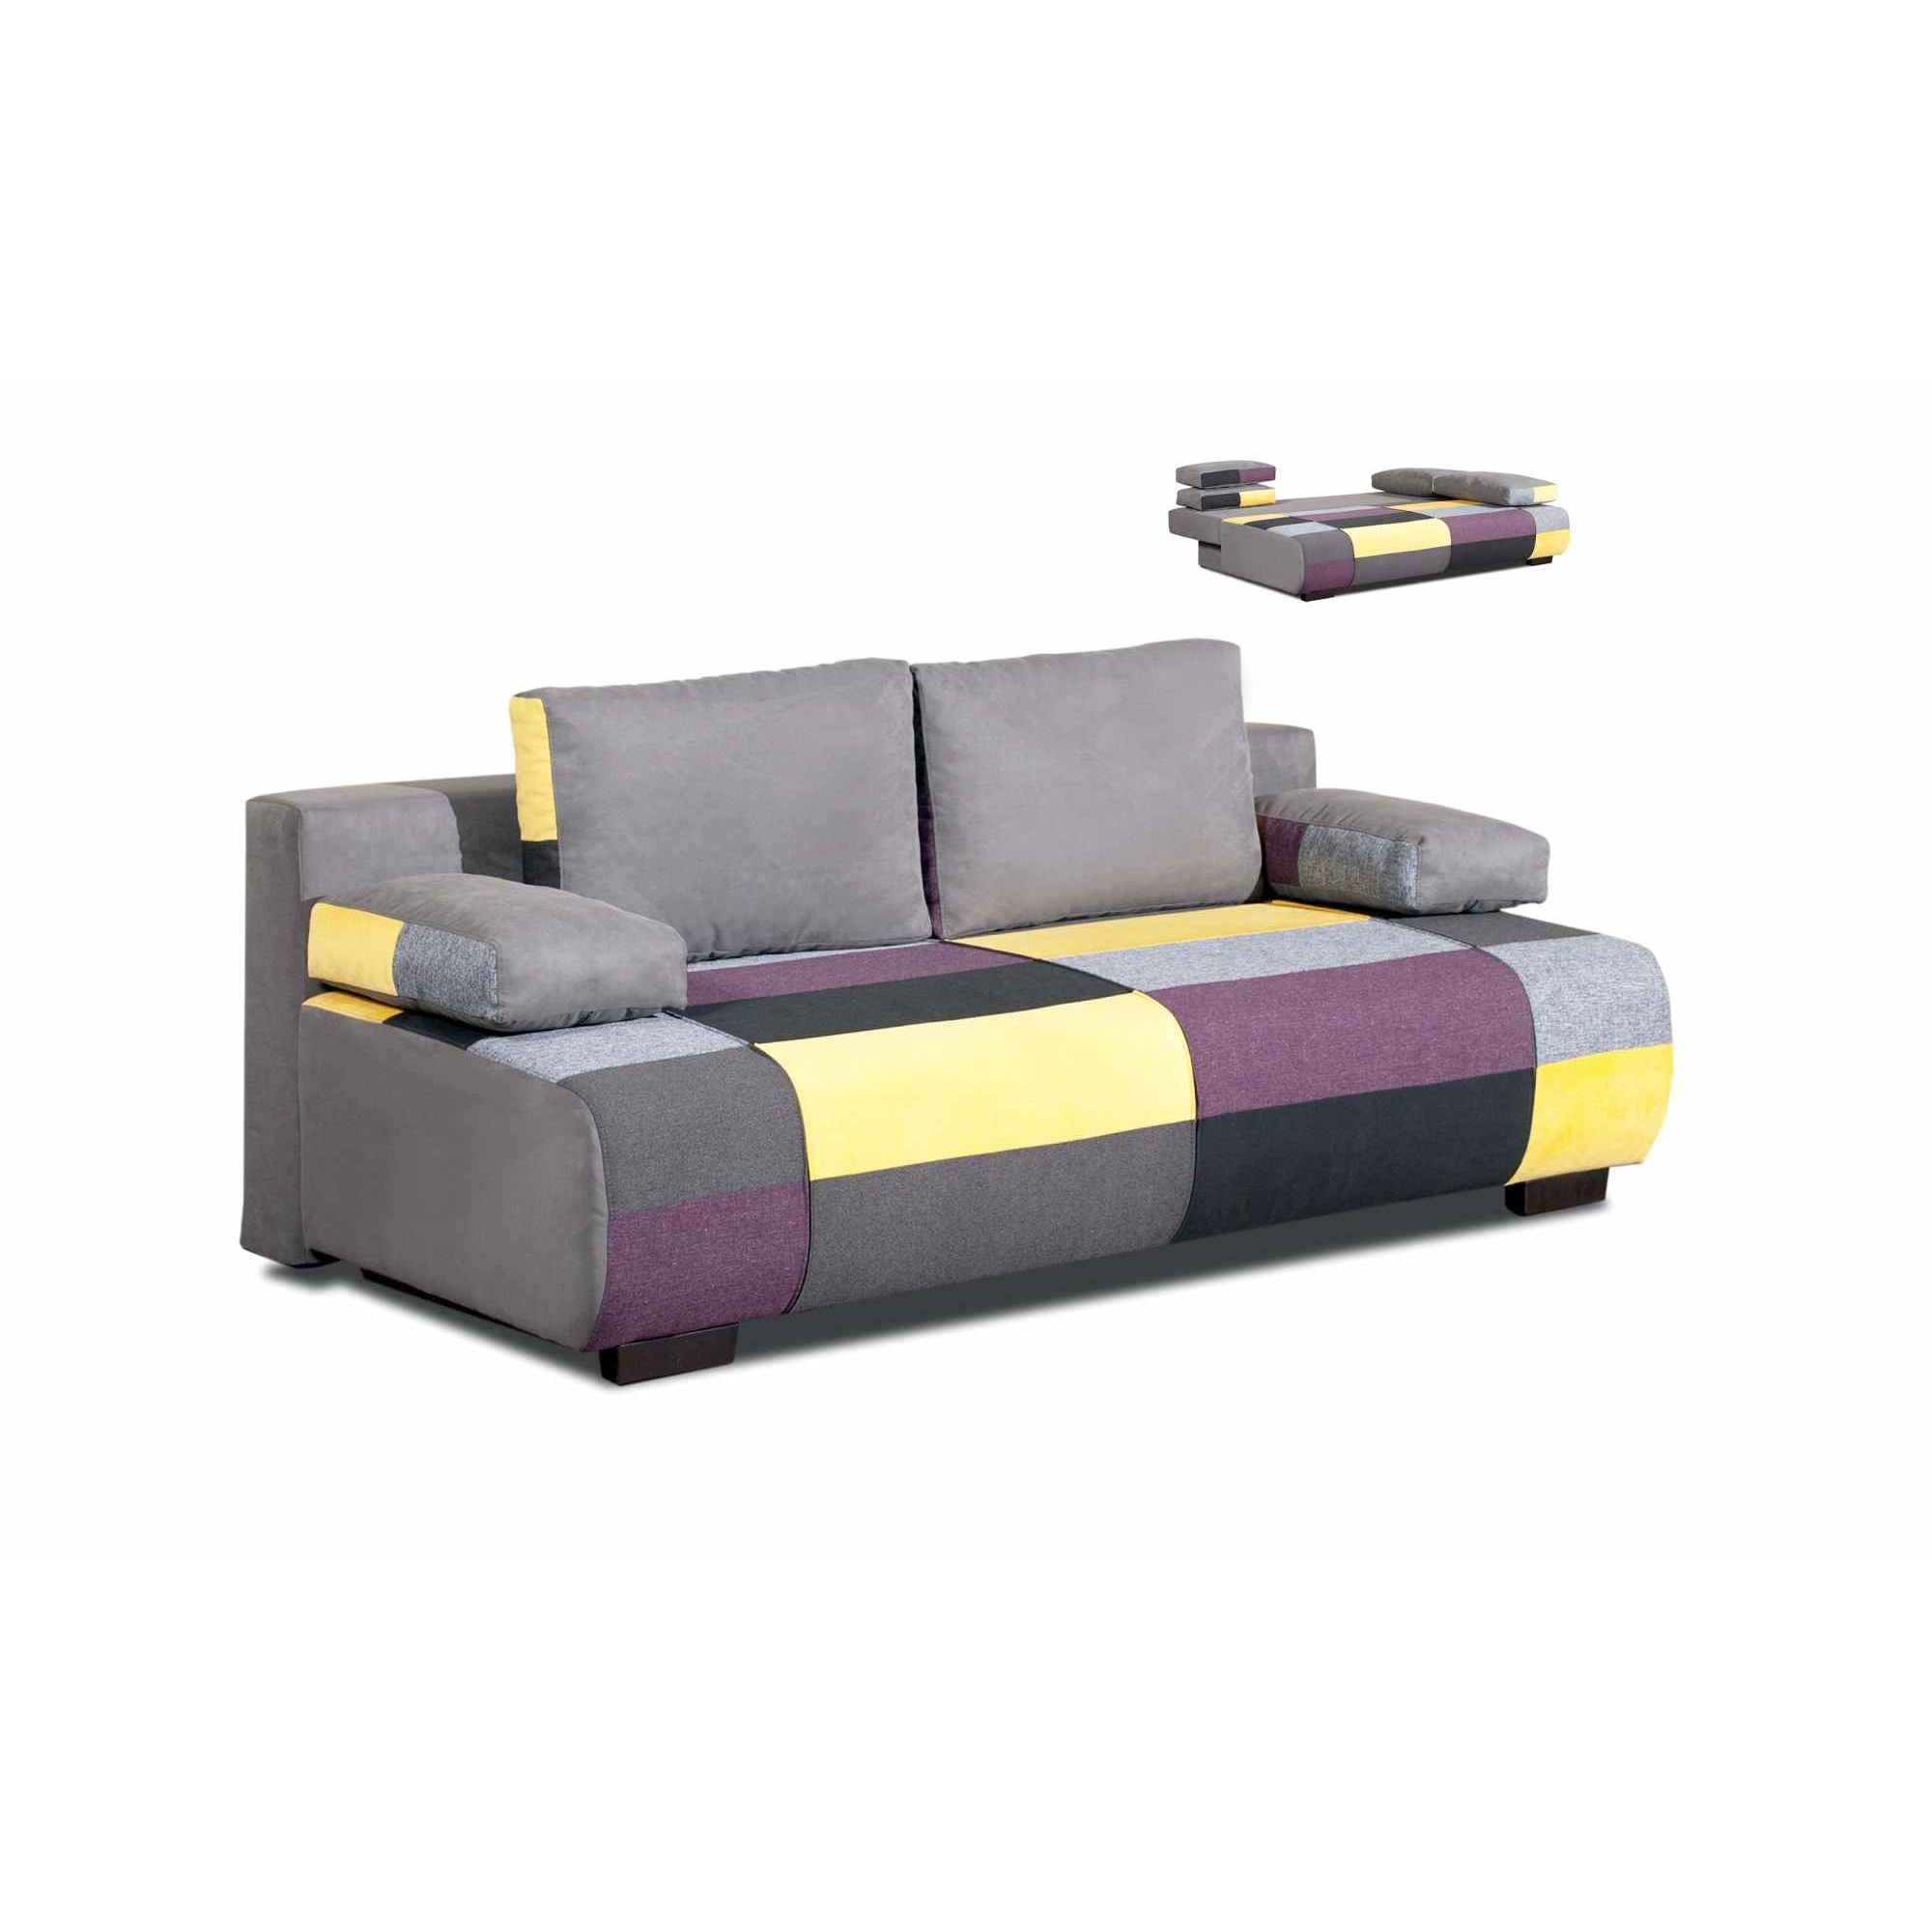 deco in paris canape 3 places convertible en tissu jaune malte joe jaune. Black Bedroom Furniture Sets. Home Design Ideas